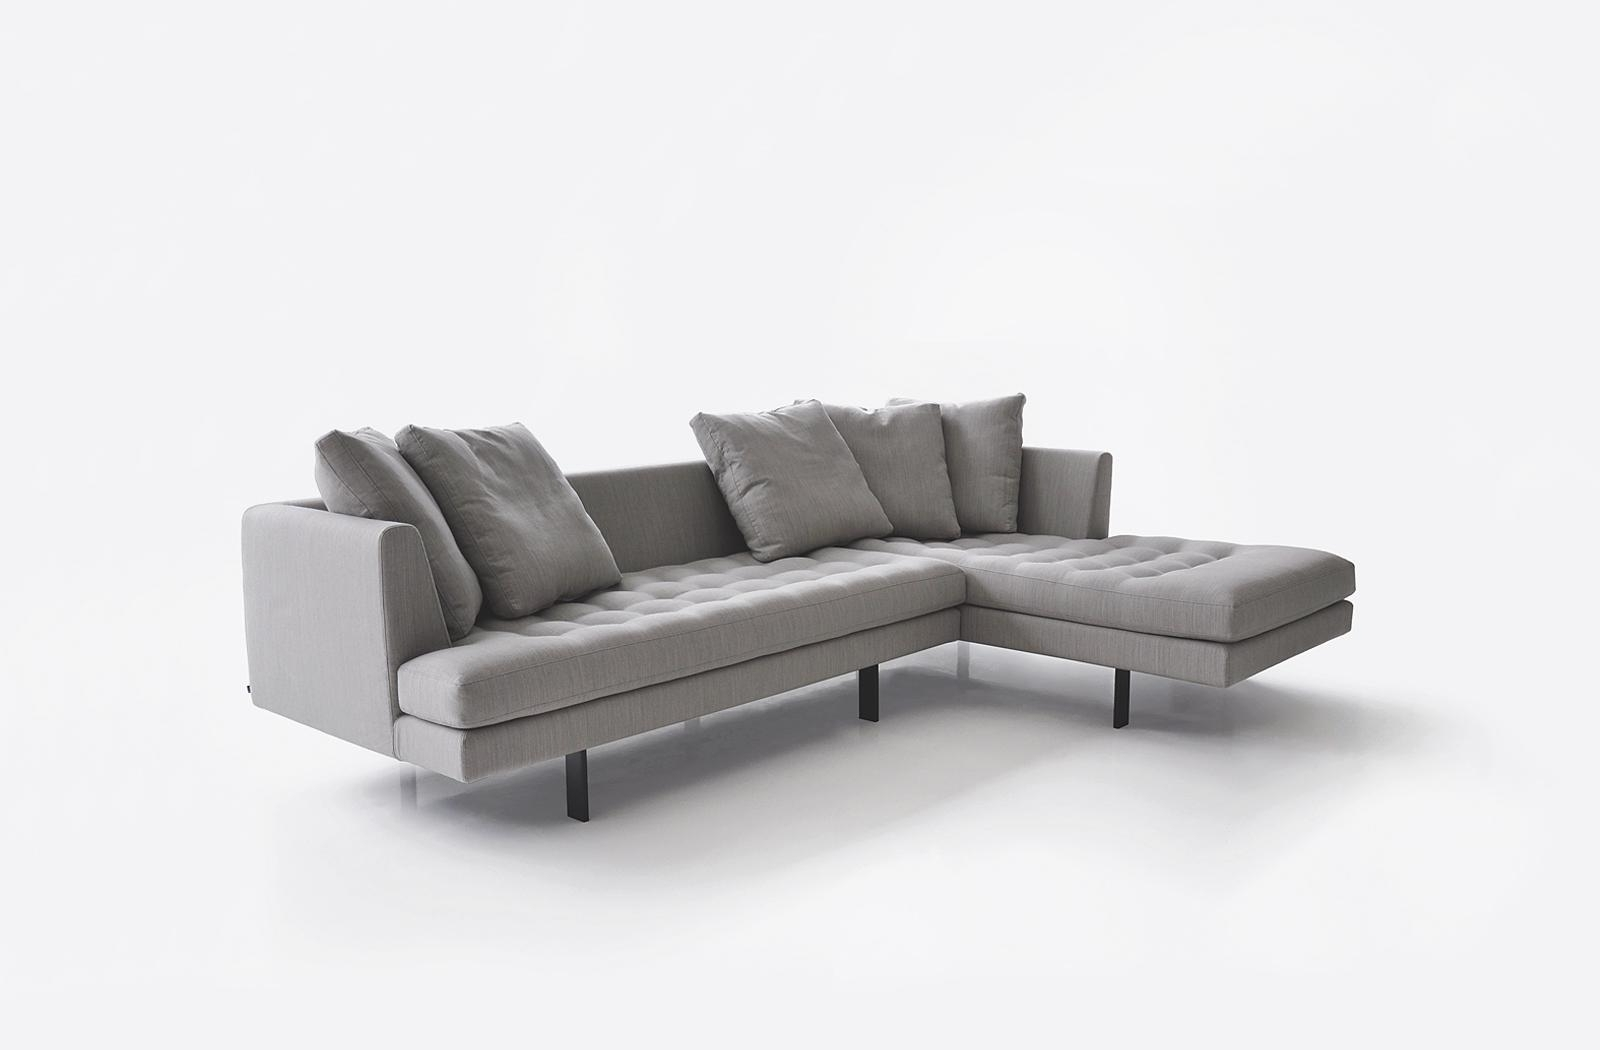 Current Furniture : Sectional Sofa Bed New York Sectional Couch Clearance With Regard To Eugene Oregon Sectional Sofas (View 6 of 15)